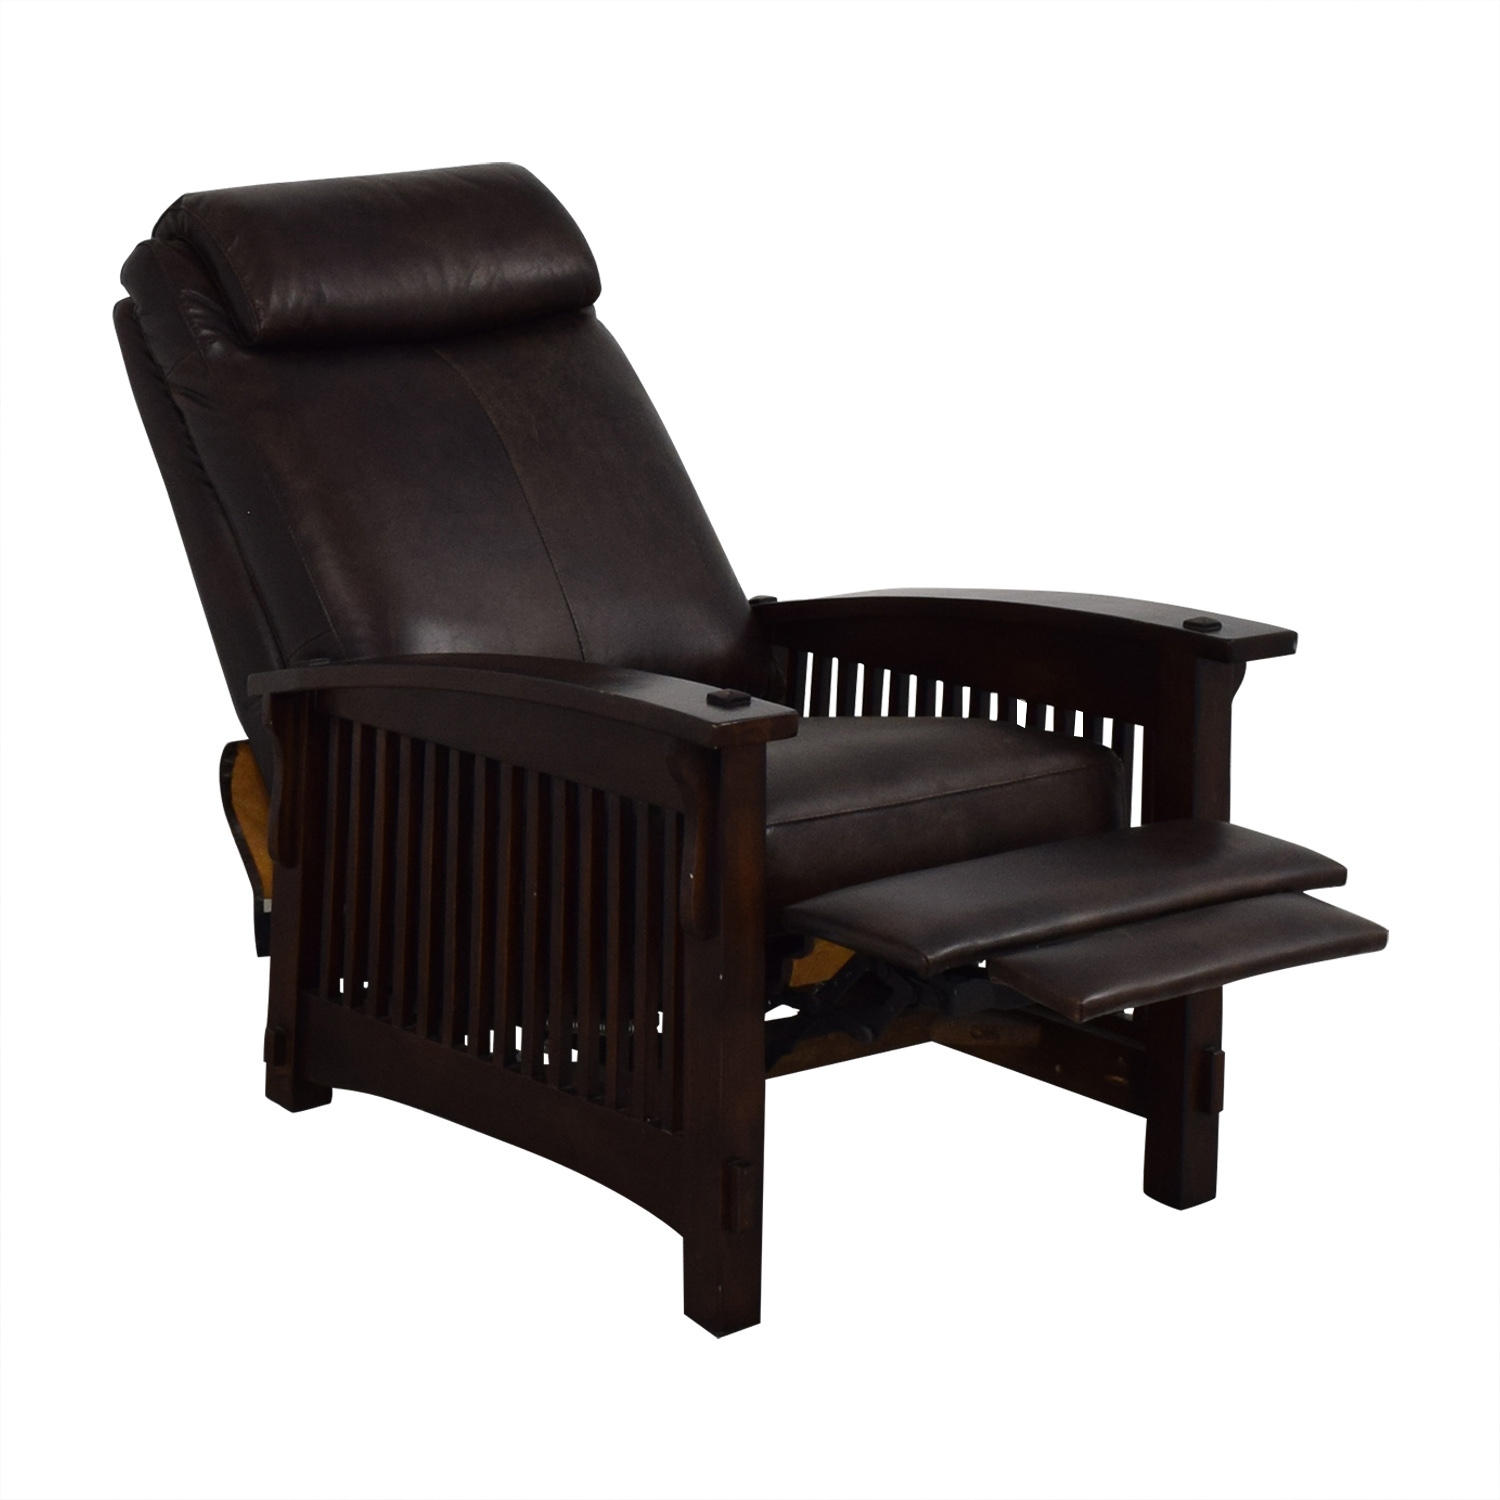 shop  Recliner Chair with Wood Frame online